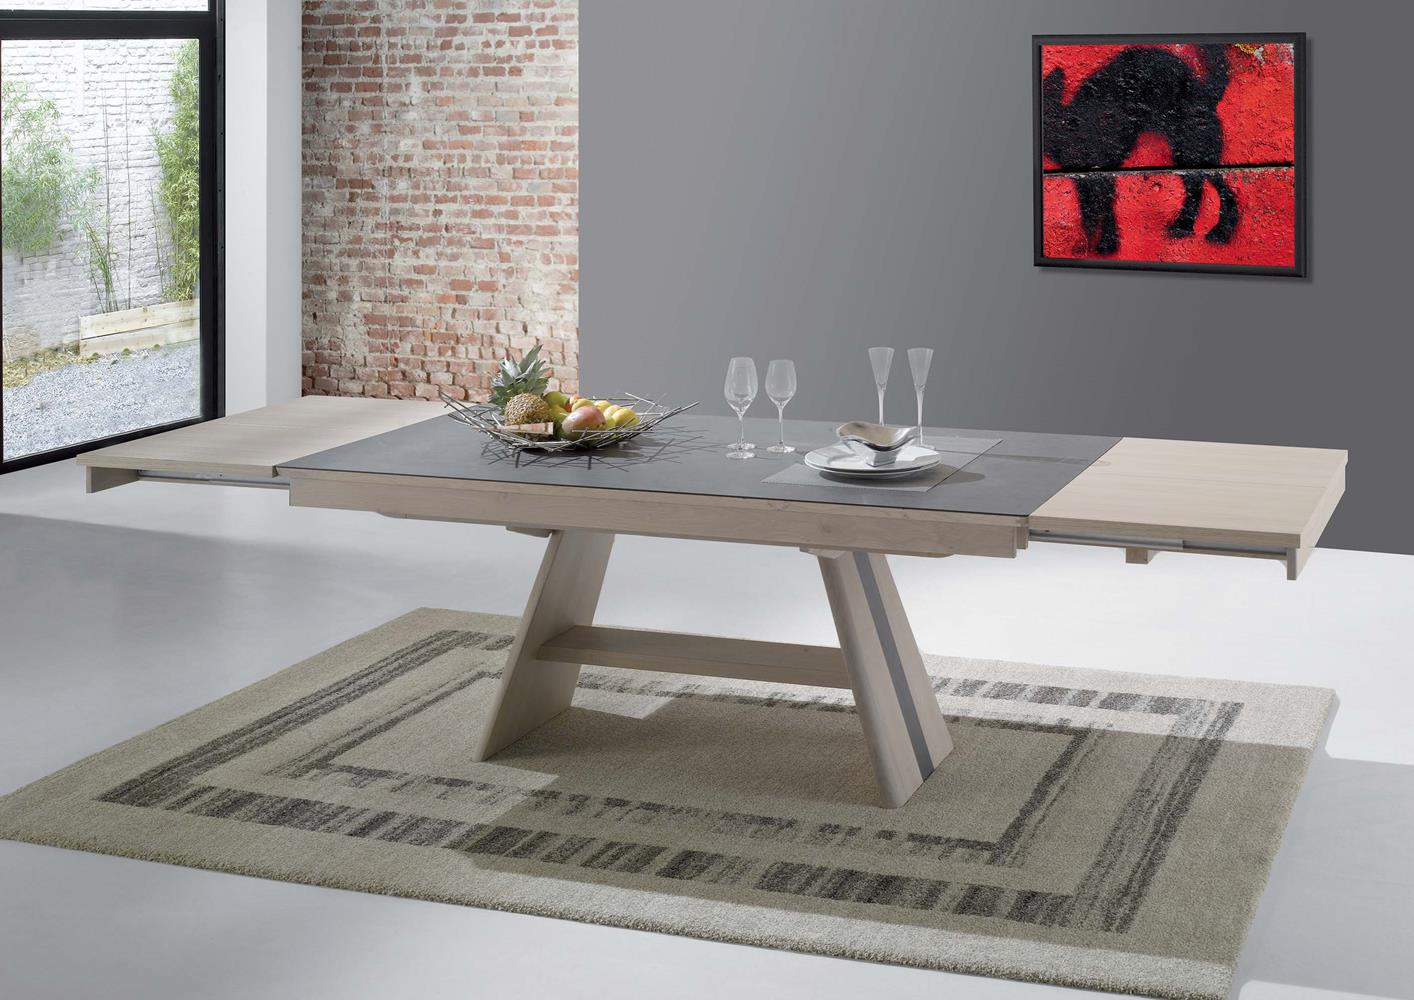 Table salle a manger design pied central valdiz for Table salle a manger design pied central